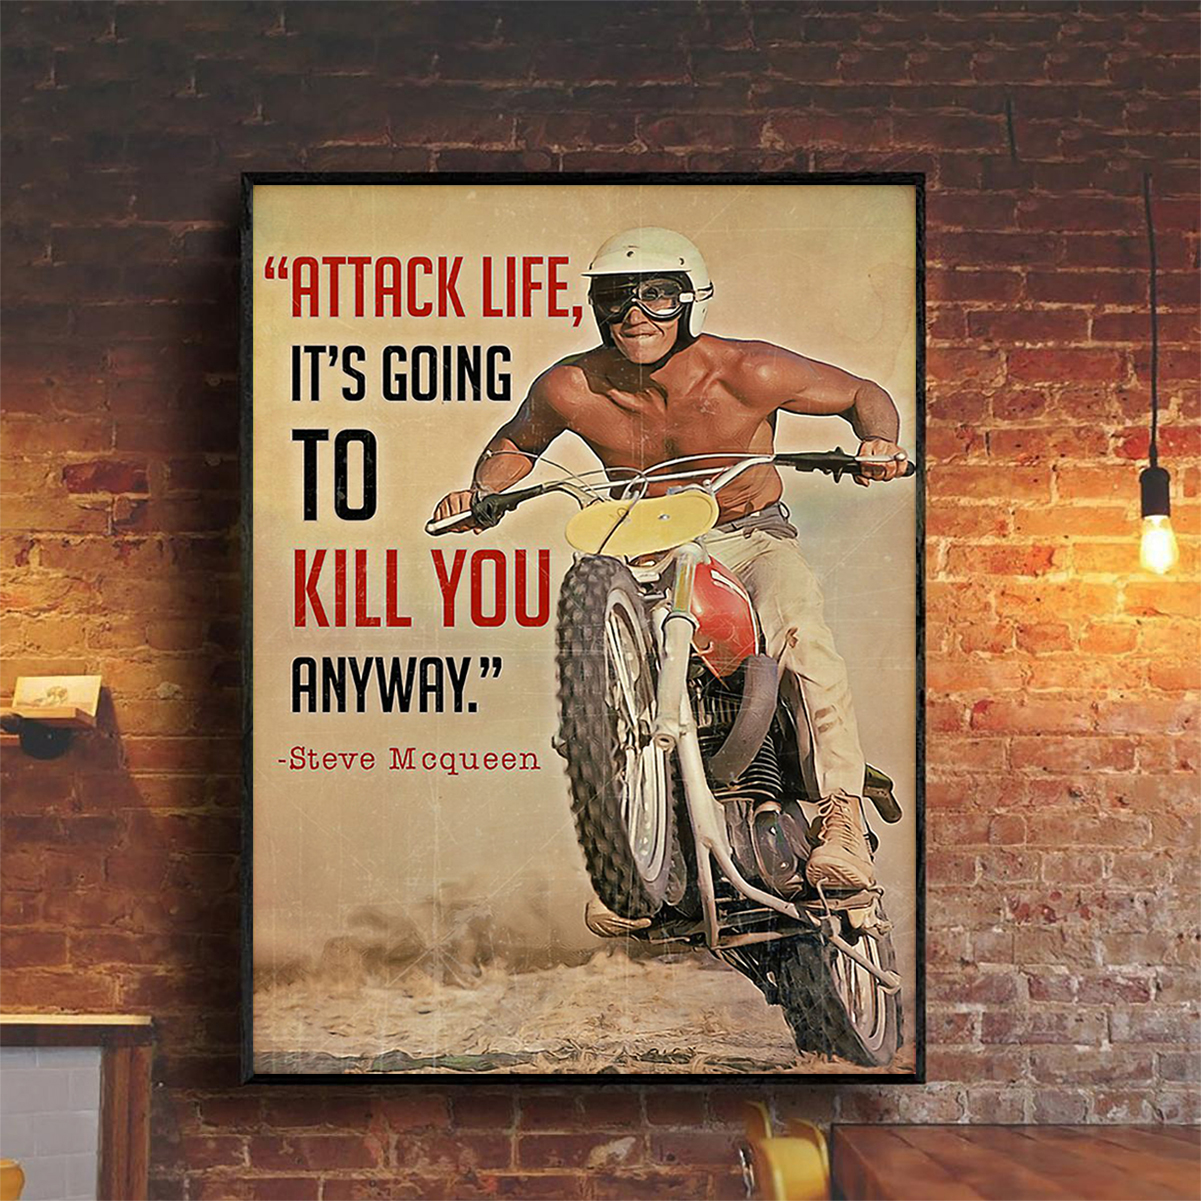 Steve mqueen attack life it's going to kill you anyway poster A2